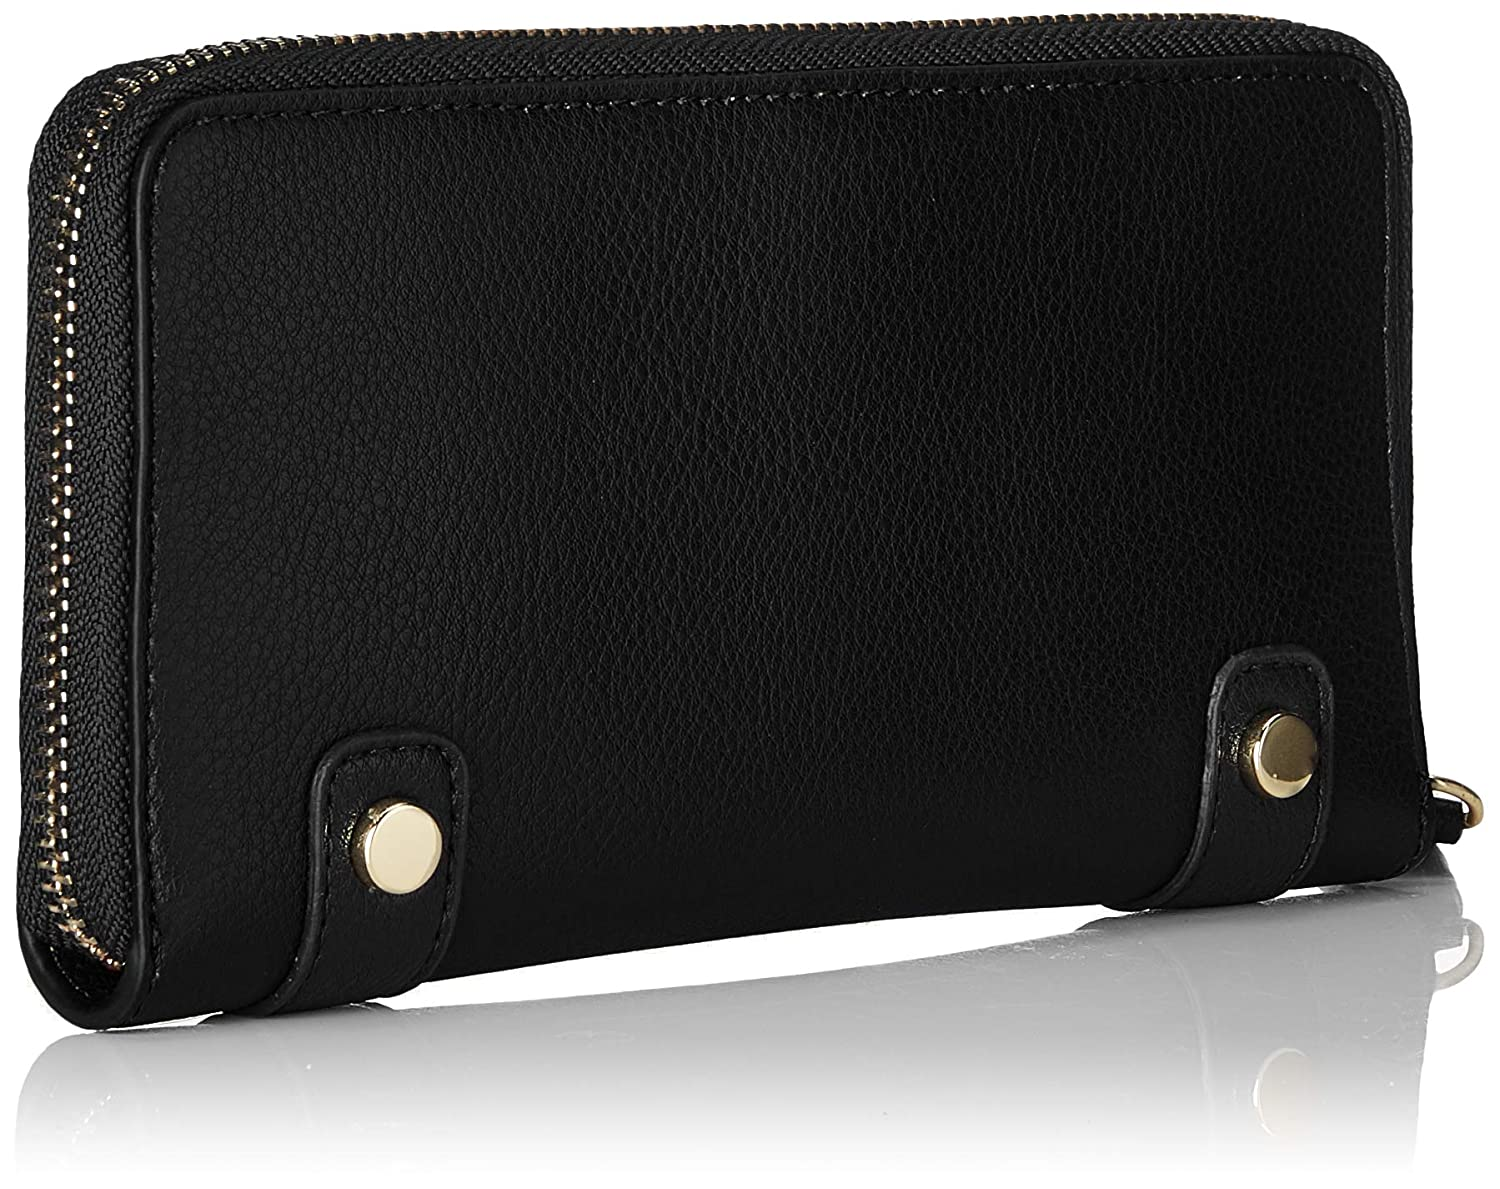 Amazon.com: Tommy Hilfiger Chain Za Wallet, Womens Black, 2x9.7x18.9 cm (B x H T): Shoes